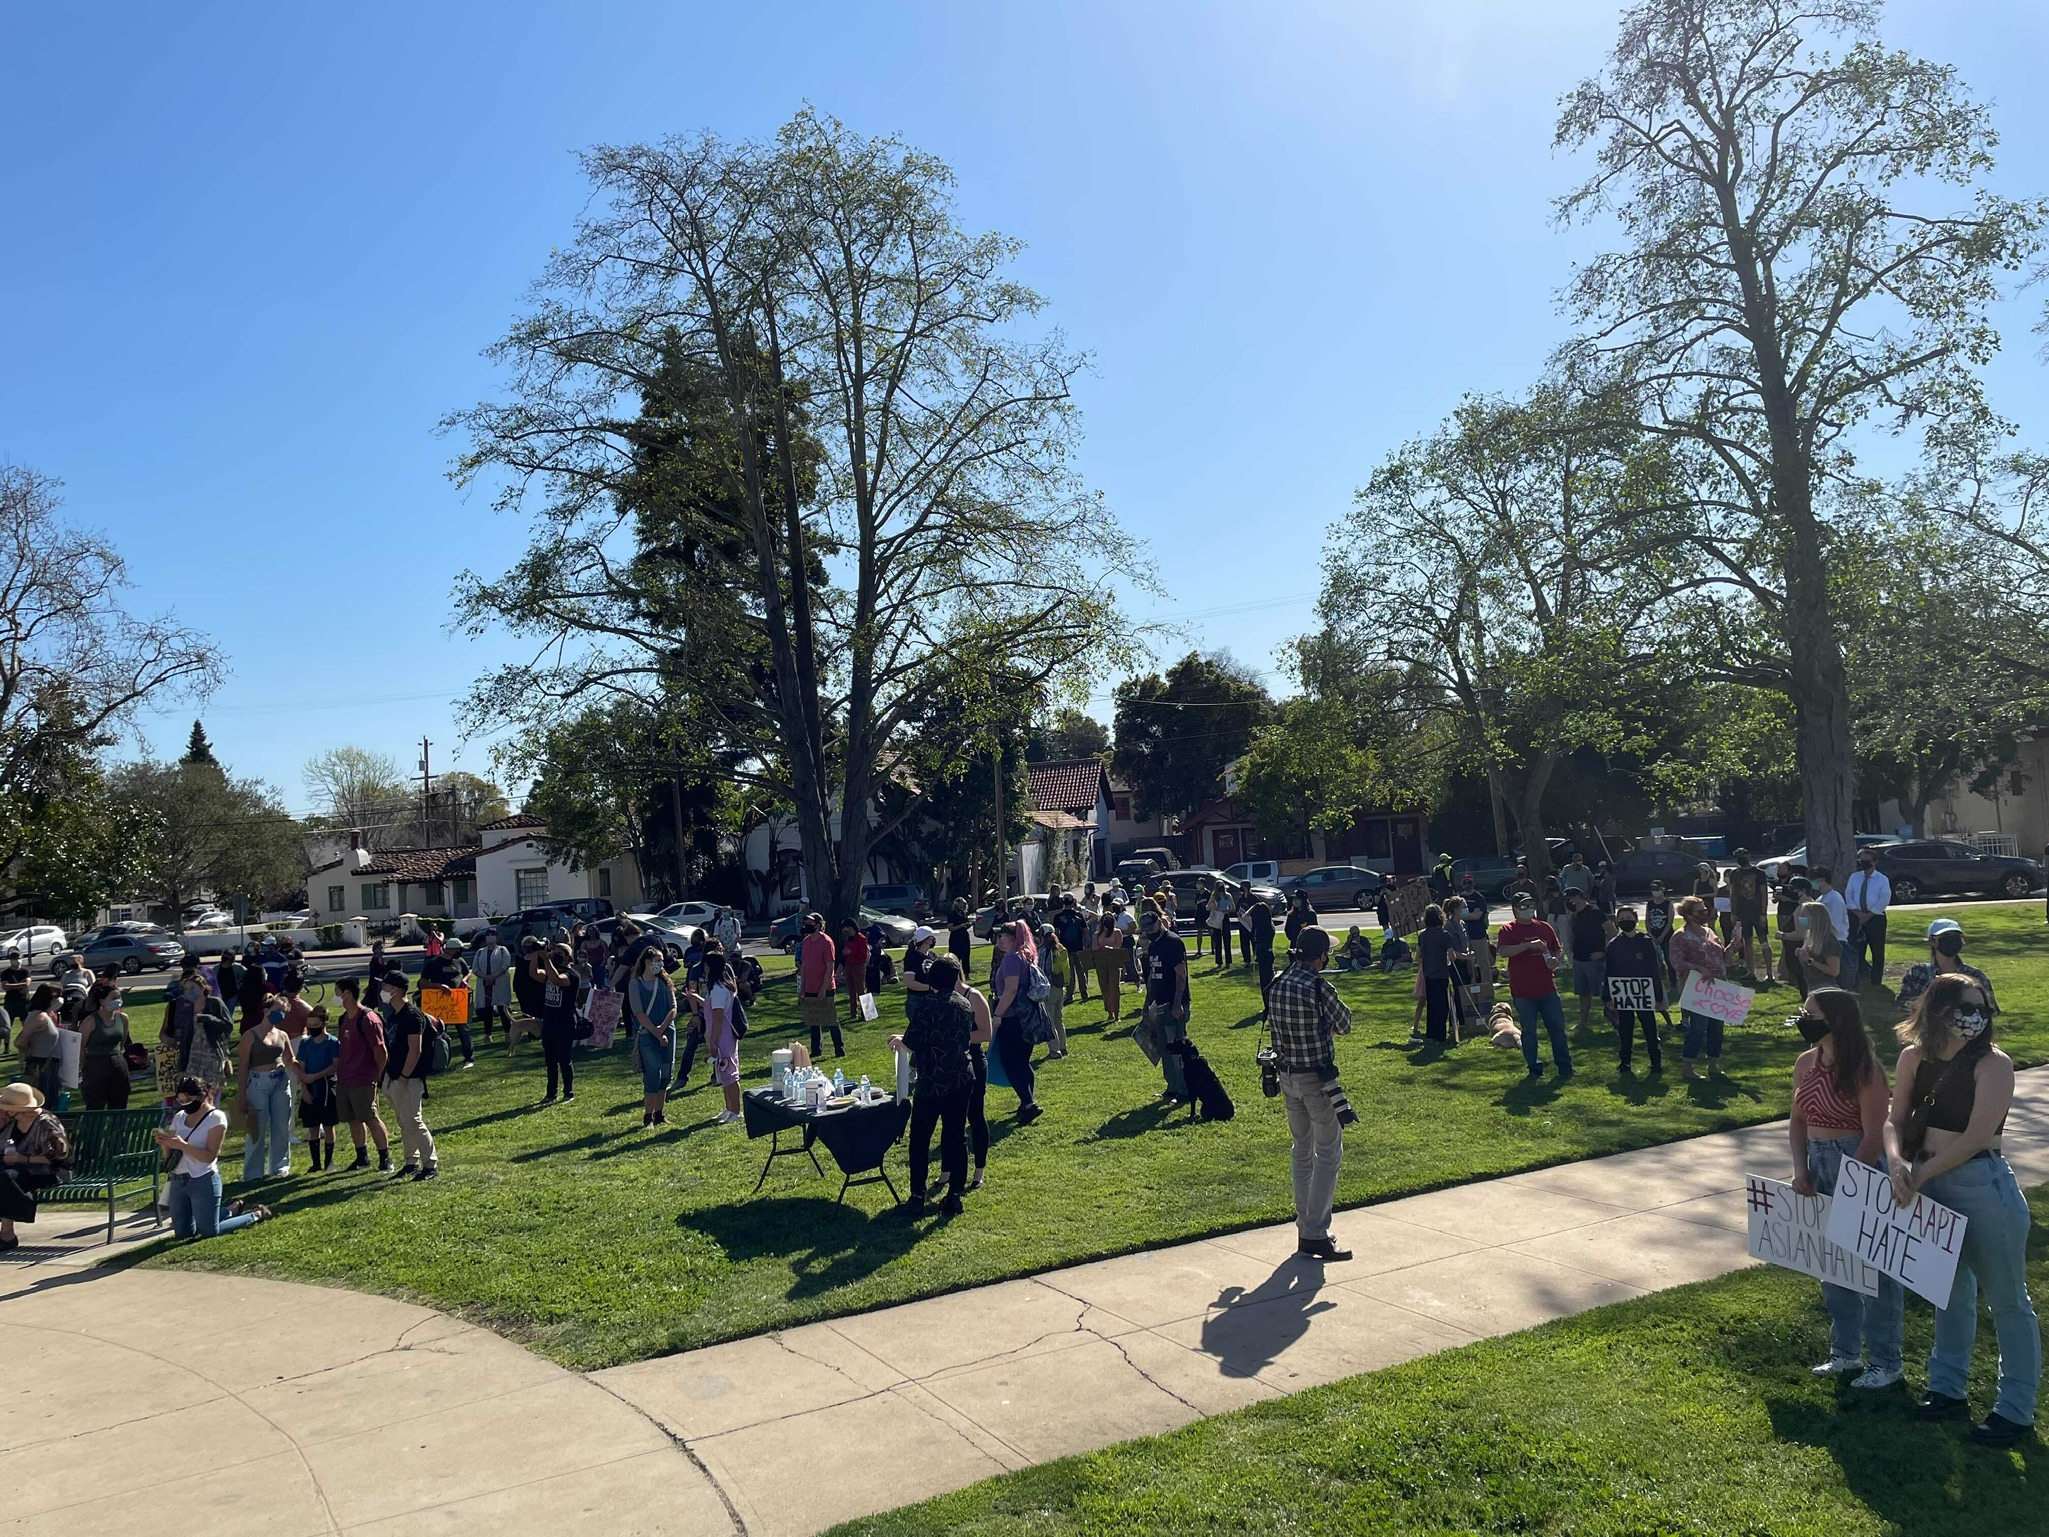 keyt.com: Demonstrators march in downtown SLO to protest rise in violence against Asian Americans and Pacific Islanders